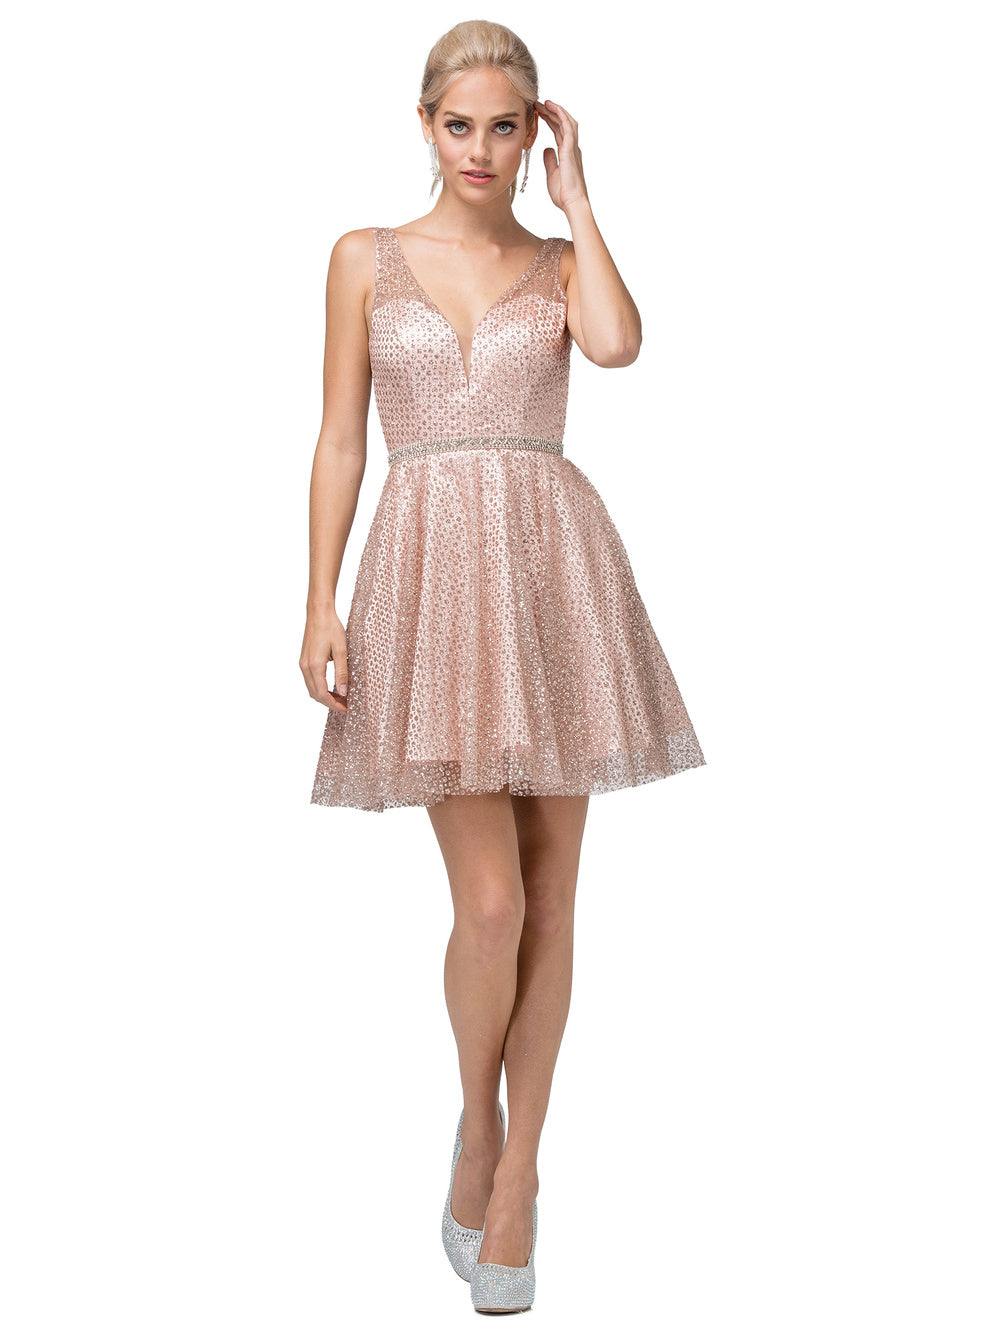 Dancing Queen DQ 3126 - Glitter Bodice with Tulle Skirt Homecoming Dress & Rhinestone Belt - Diggz Prom